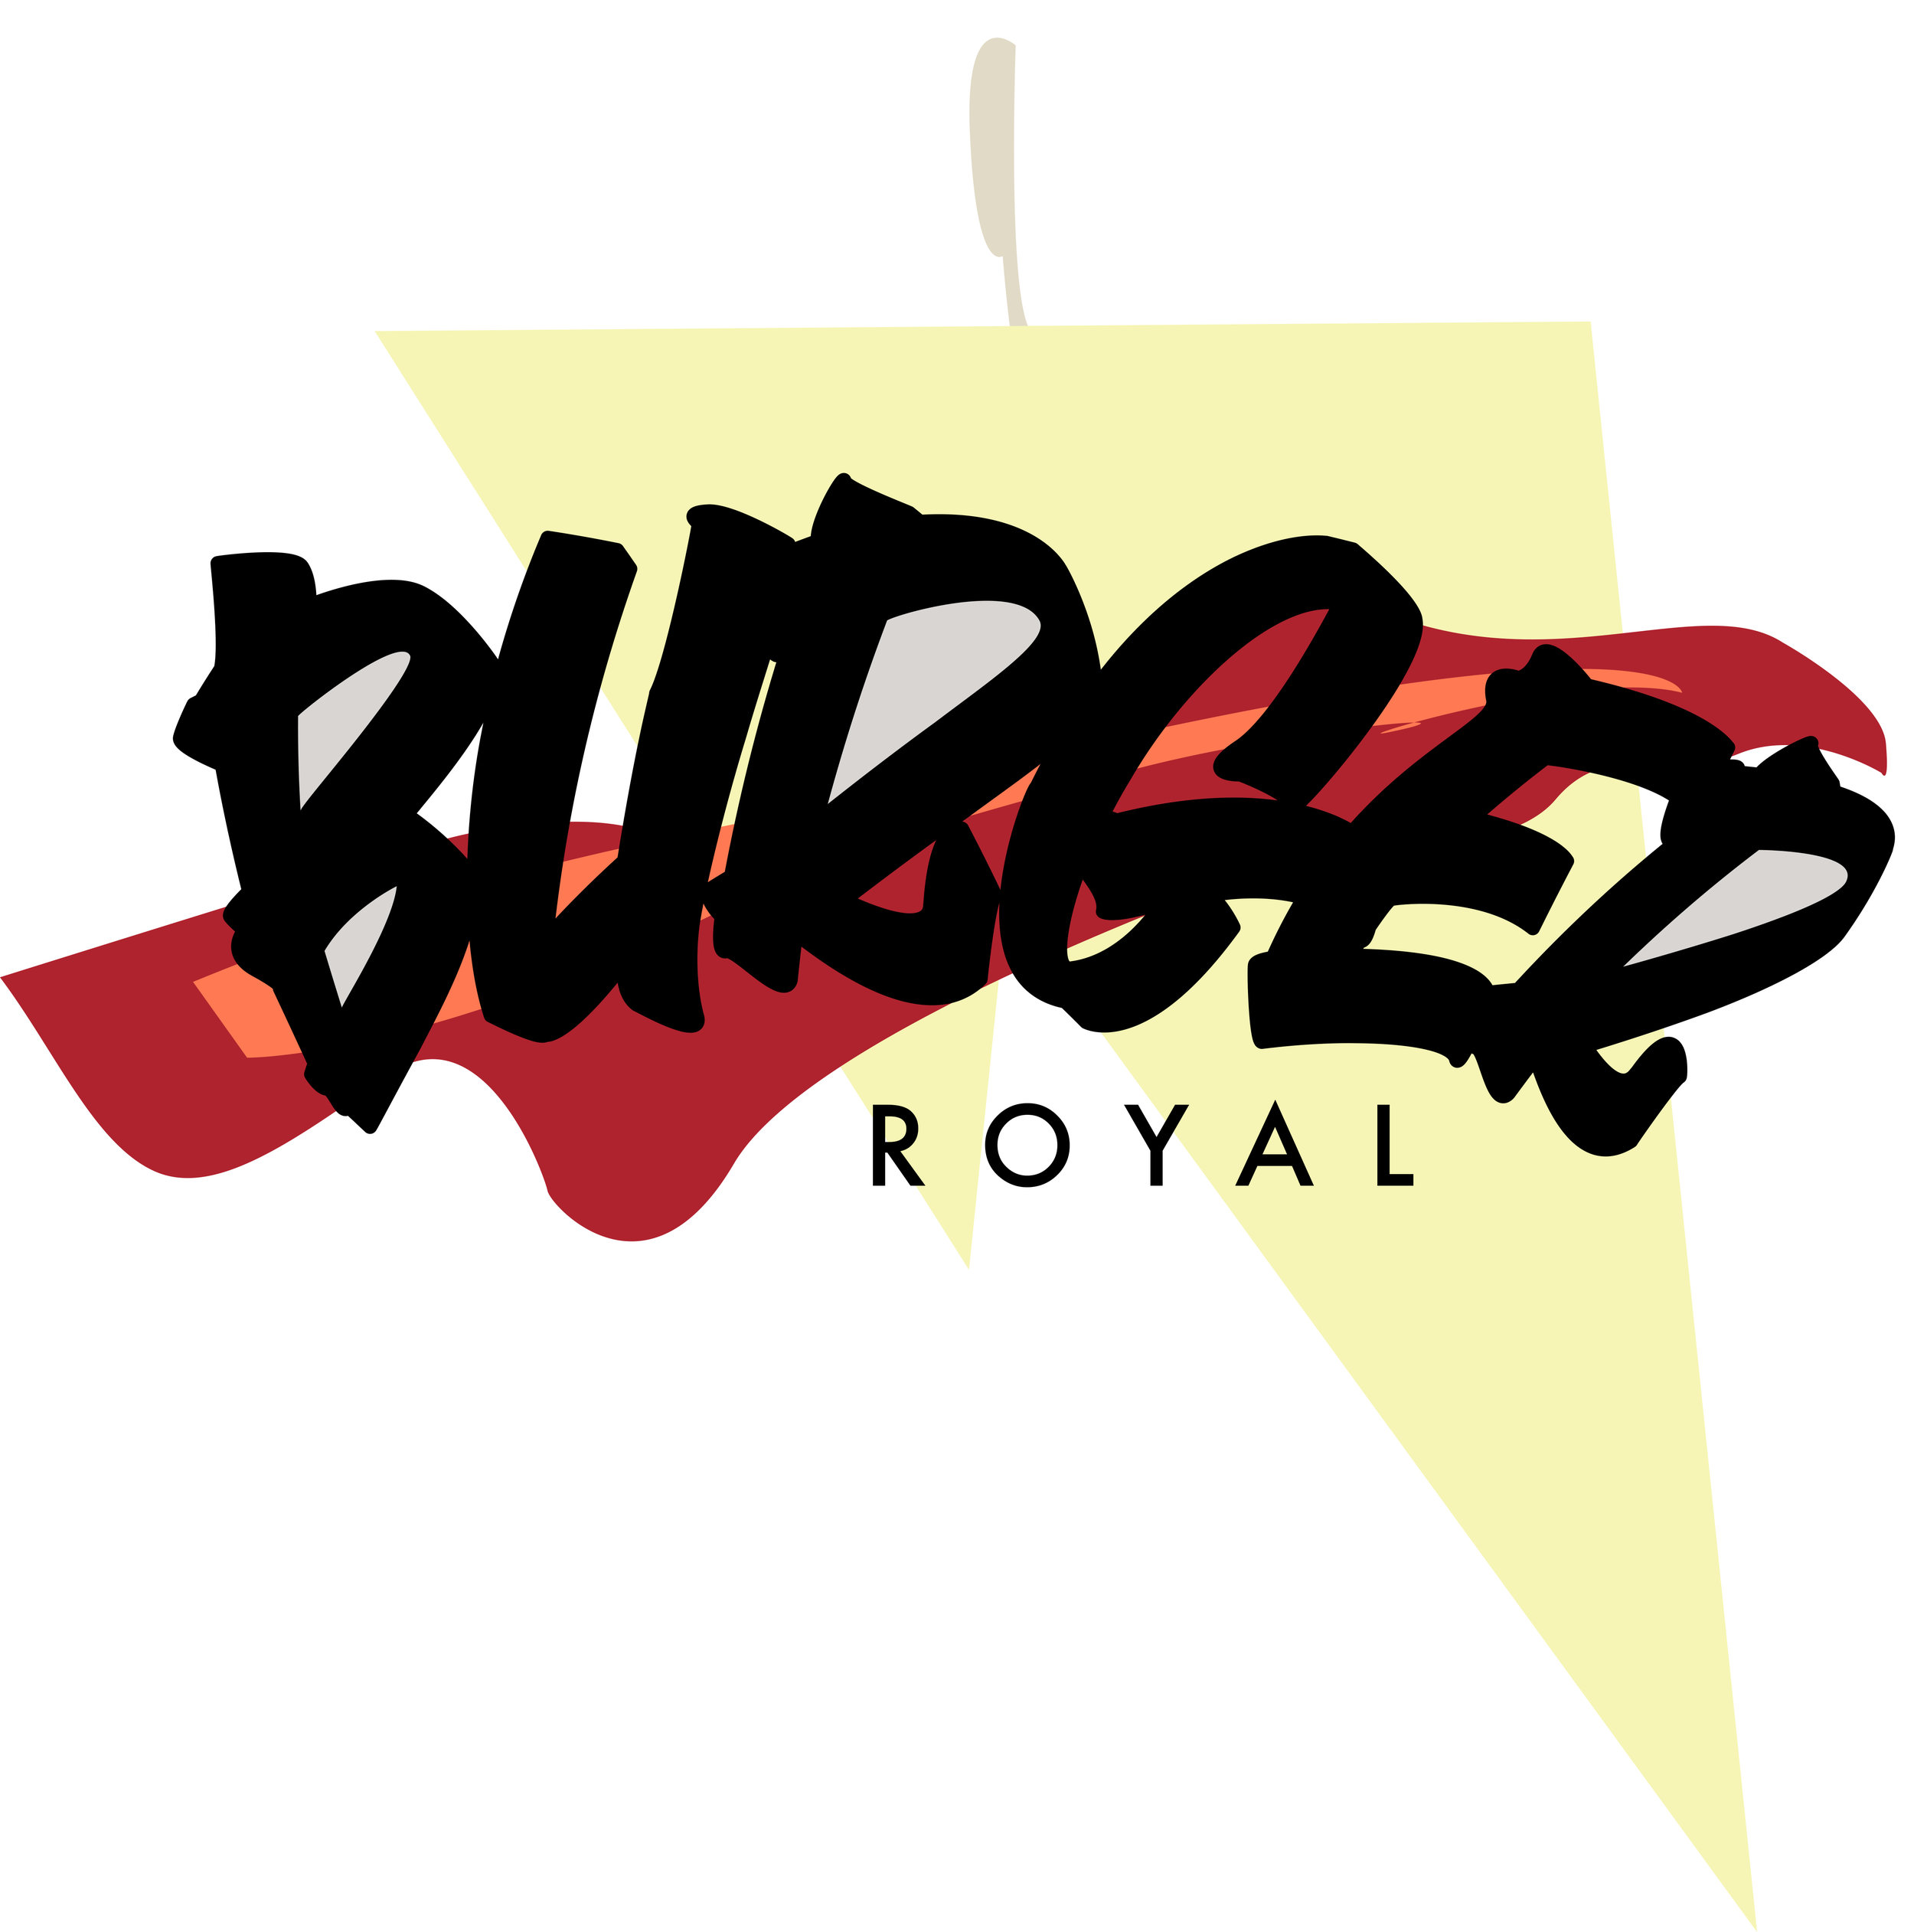 BURGER ROYAL BACON LOGO.jpg